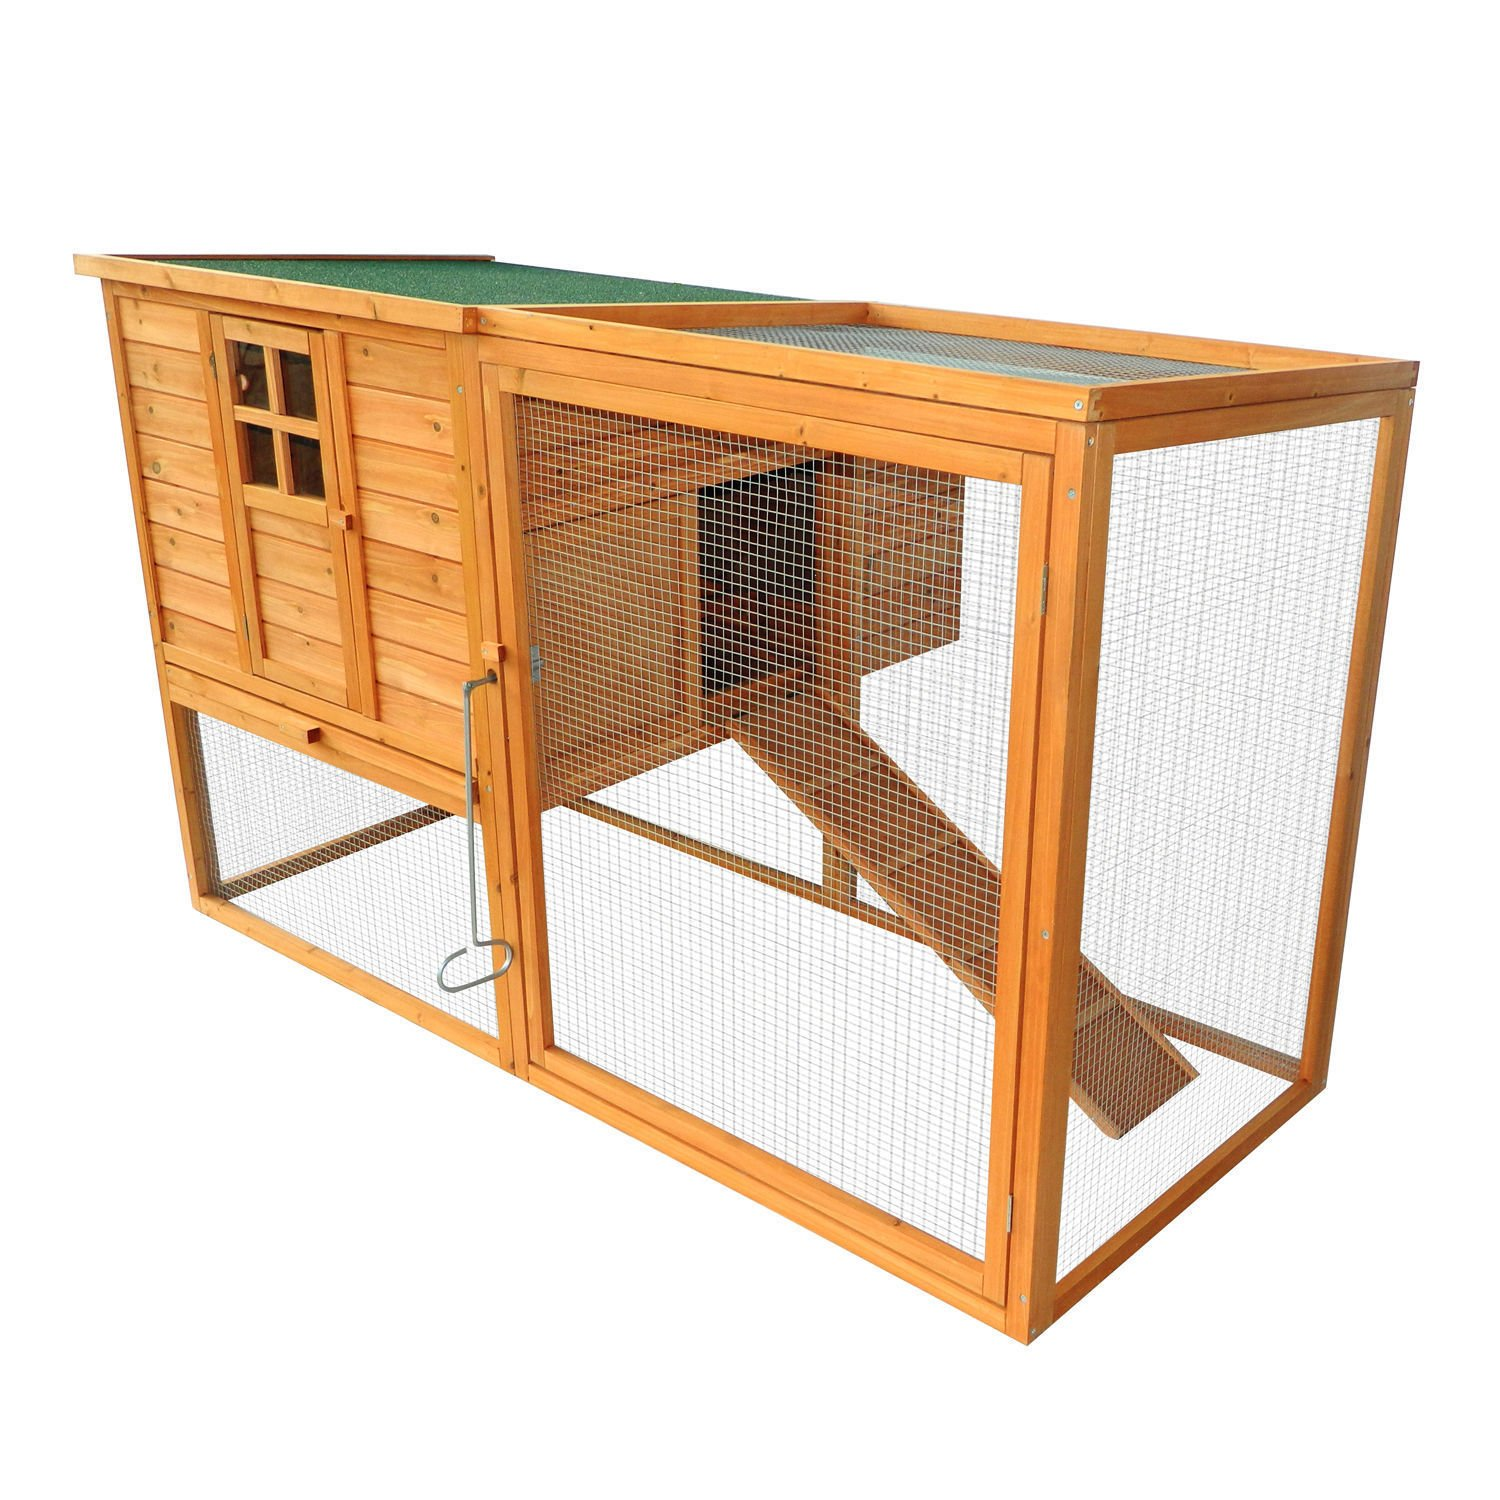 PawHut 64'' Large Wooden Chicken Coop Kit With Outdoor Run And Nesting Box by PawHut